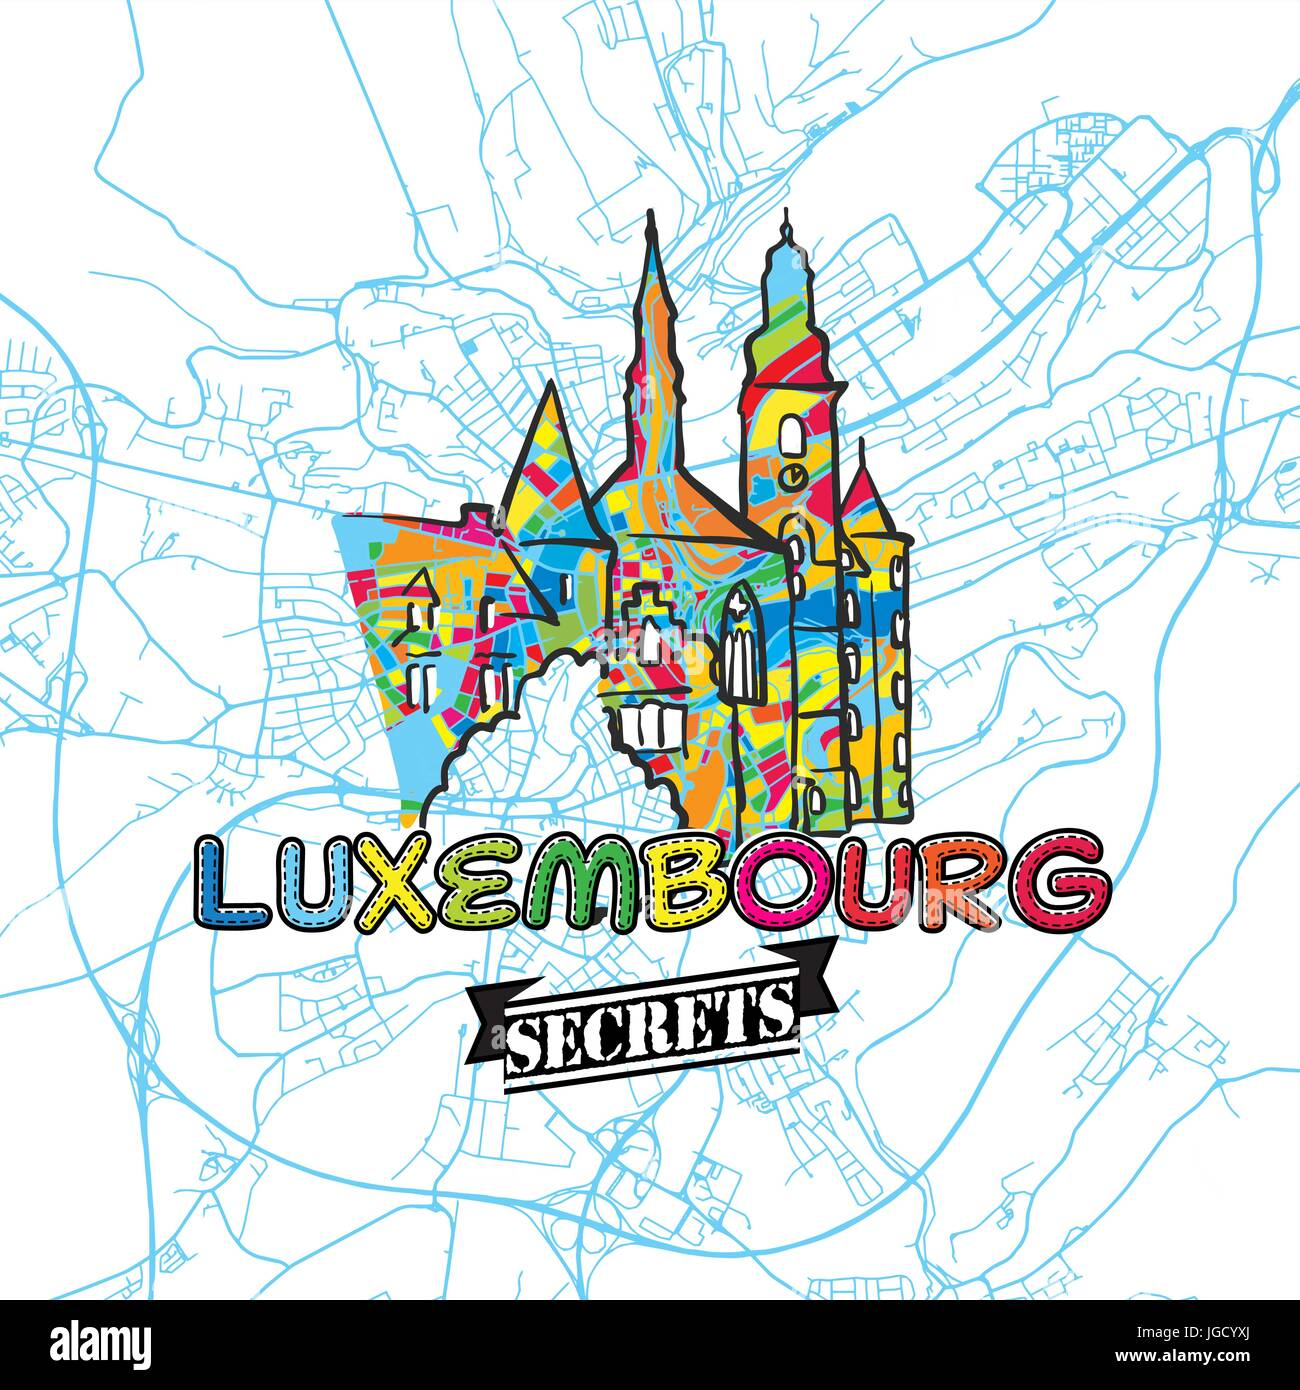 Luxembourg Travel Secrets Art Map for mapping experts and travel guides. Handmade city logo, typo badge and hand - Stock Image